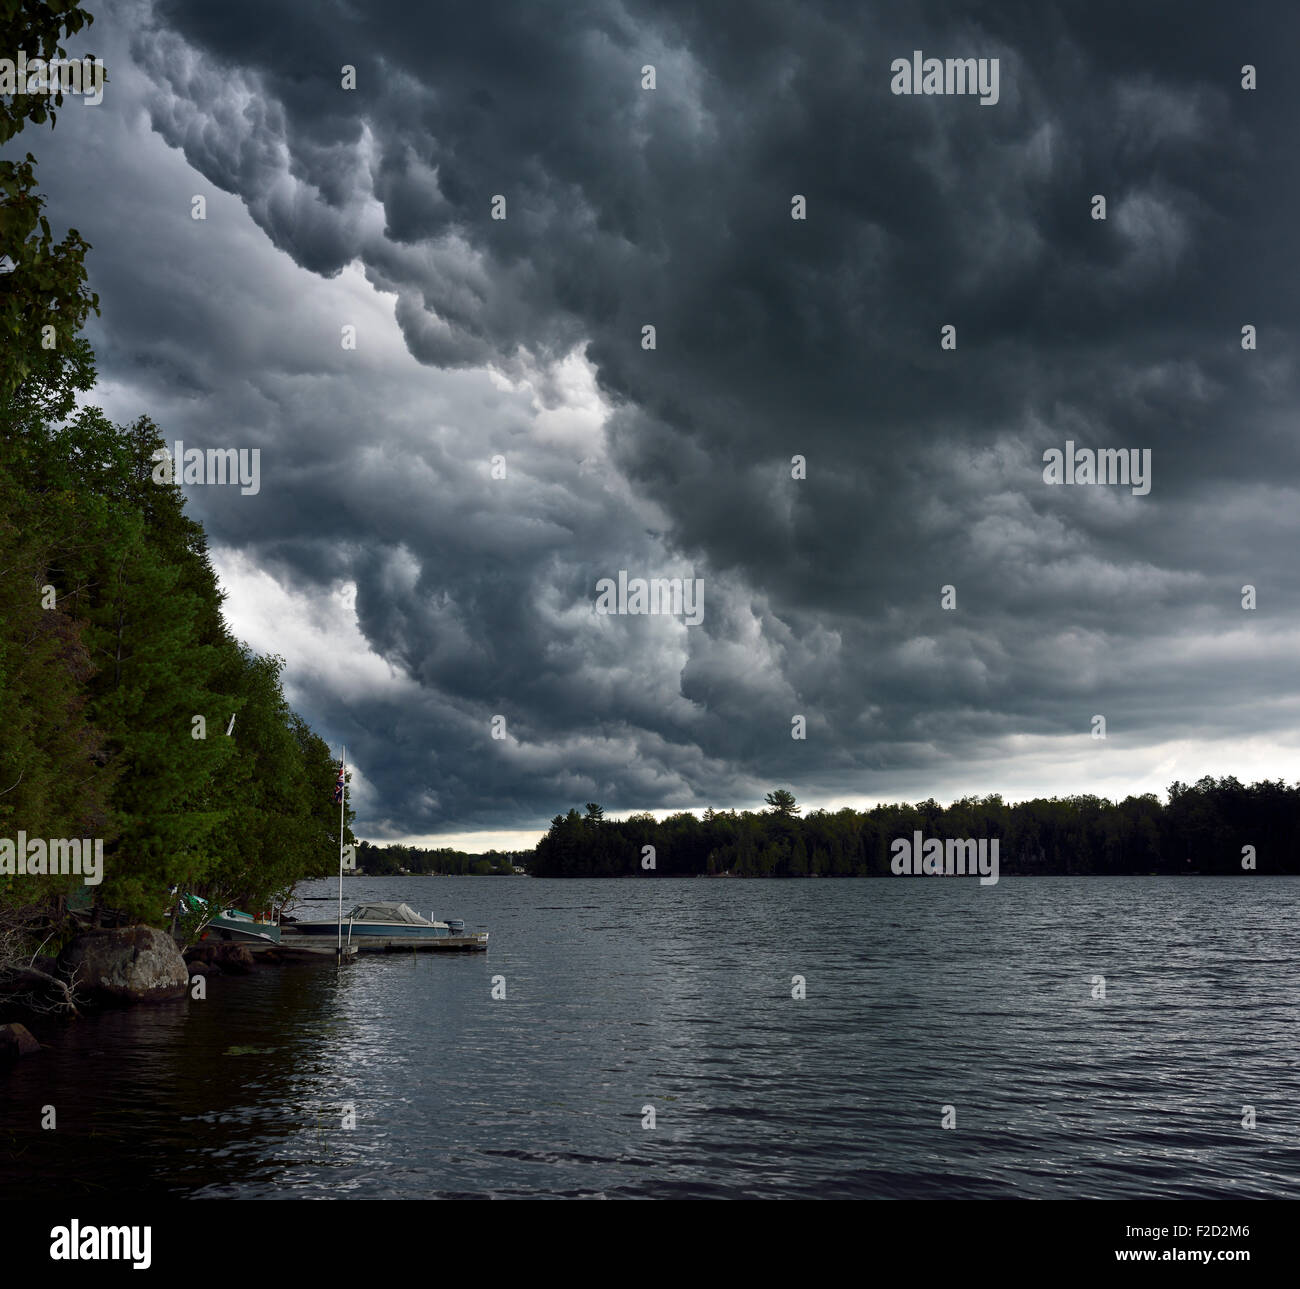 Swirling dark clouds before a thunderstorm over Lake Cecebe in cottage country of Magnetawan Ontario - Stock Image